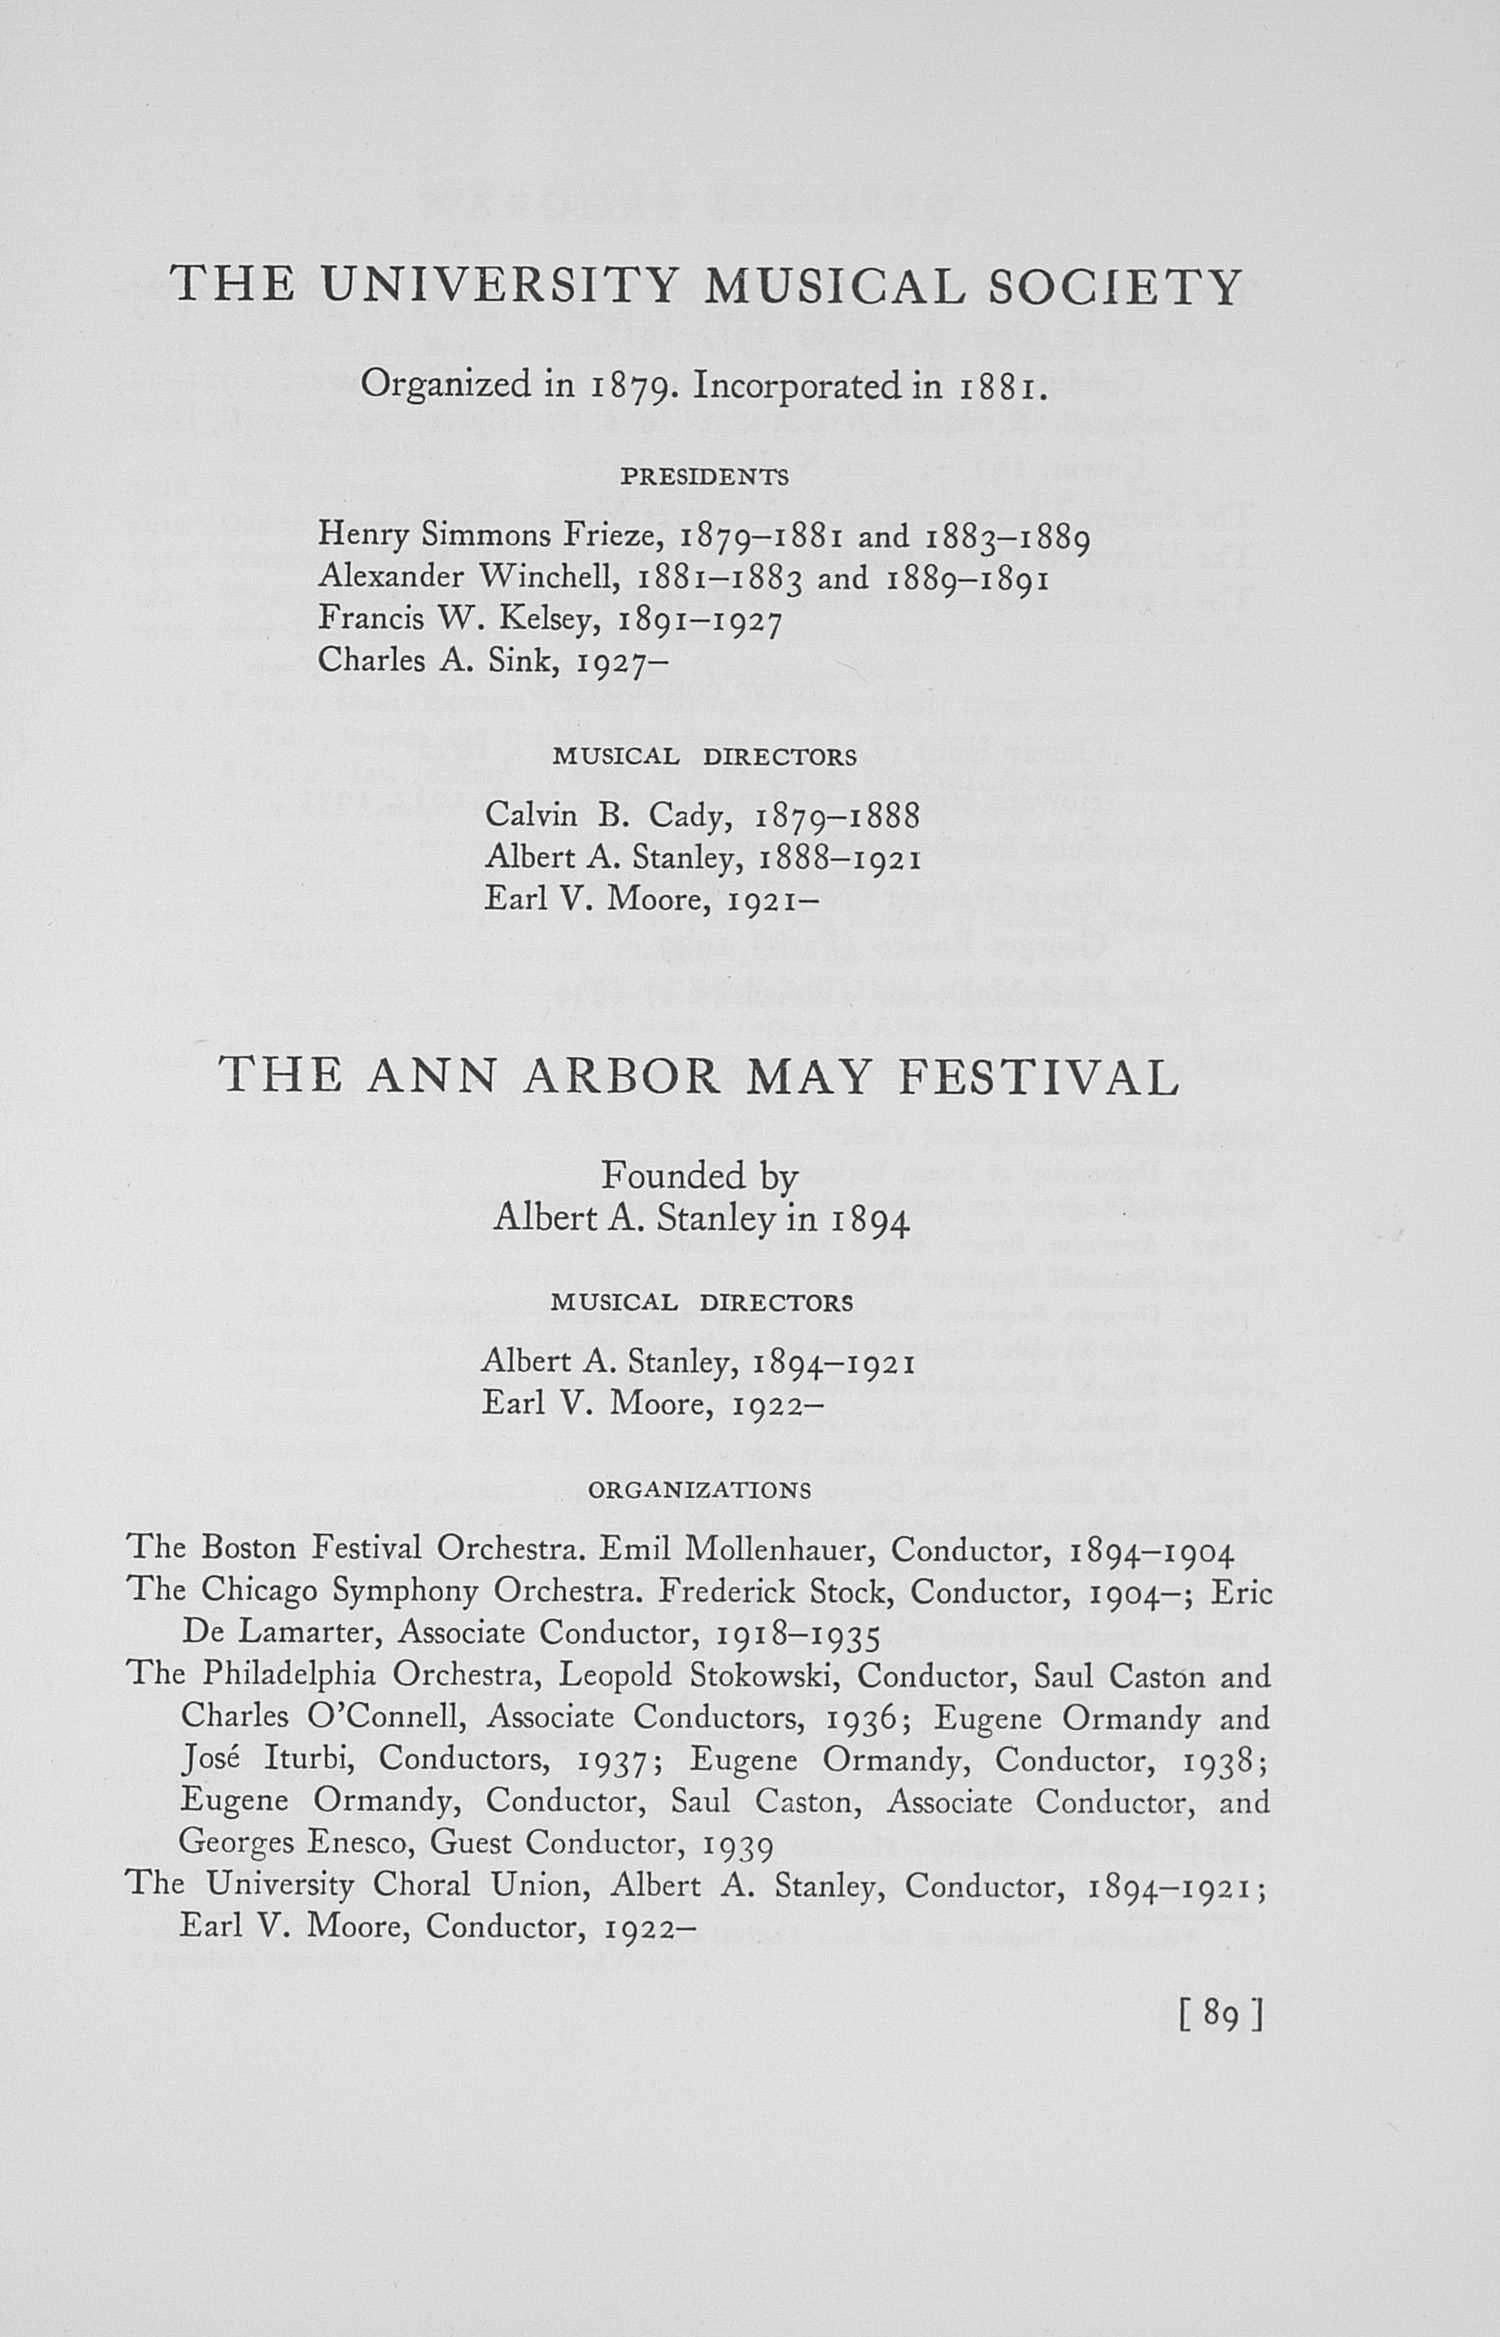 UMS Concert Program, May 10, 11, 12, And 13, 1939: The Forty-sixth Annual May Festival -- Glenn D. Mcgeoch image